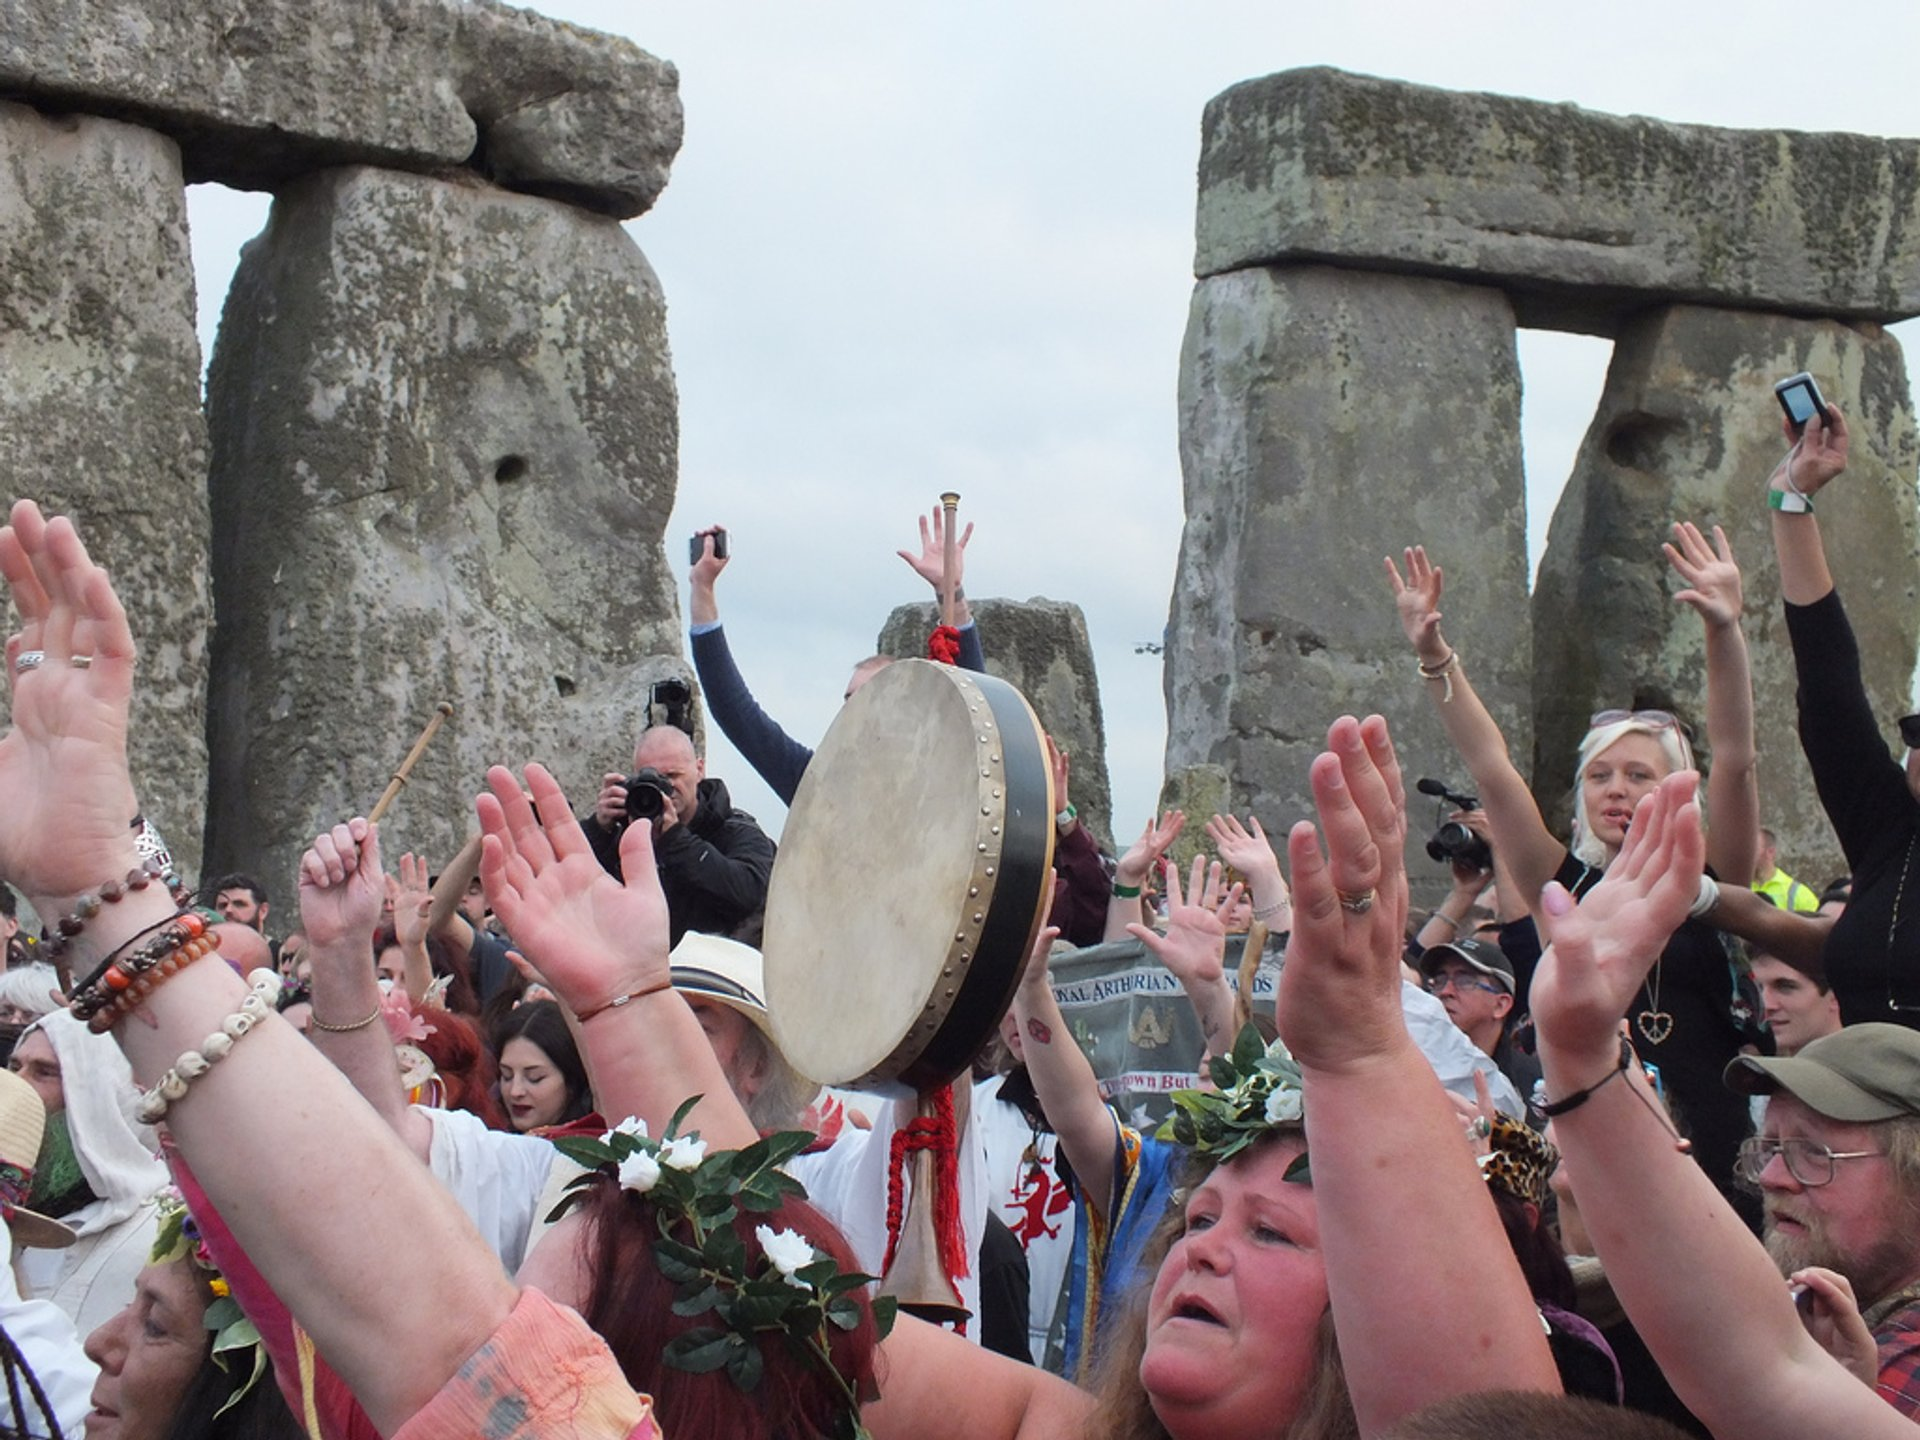 Stonehenge: Solstice and Equinox in England - Best Season